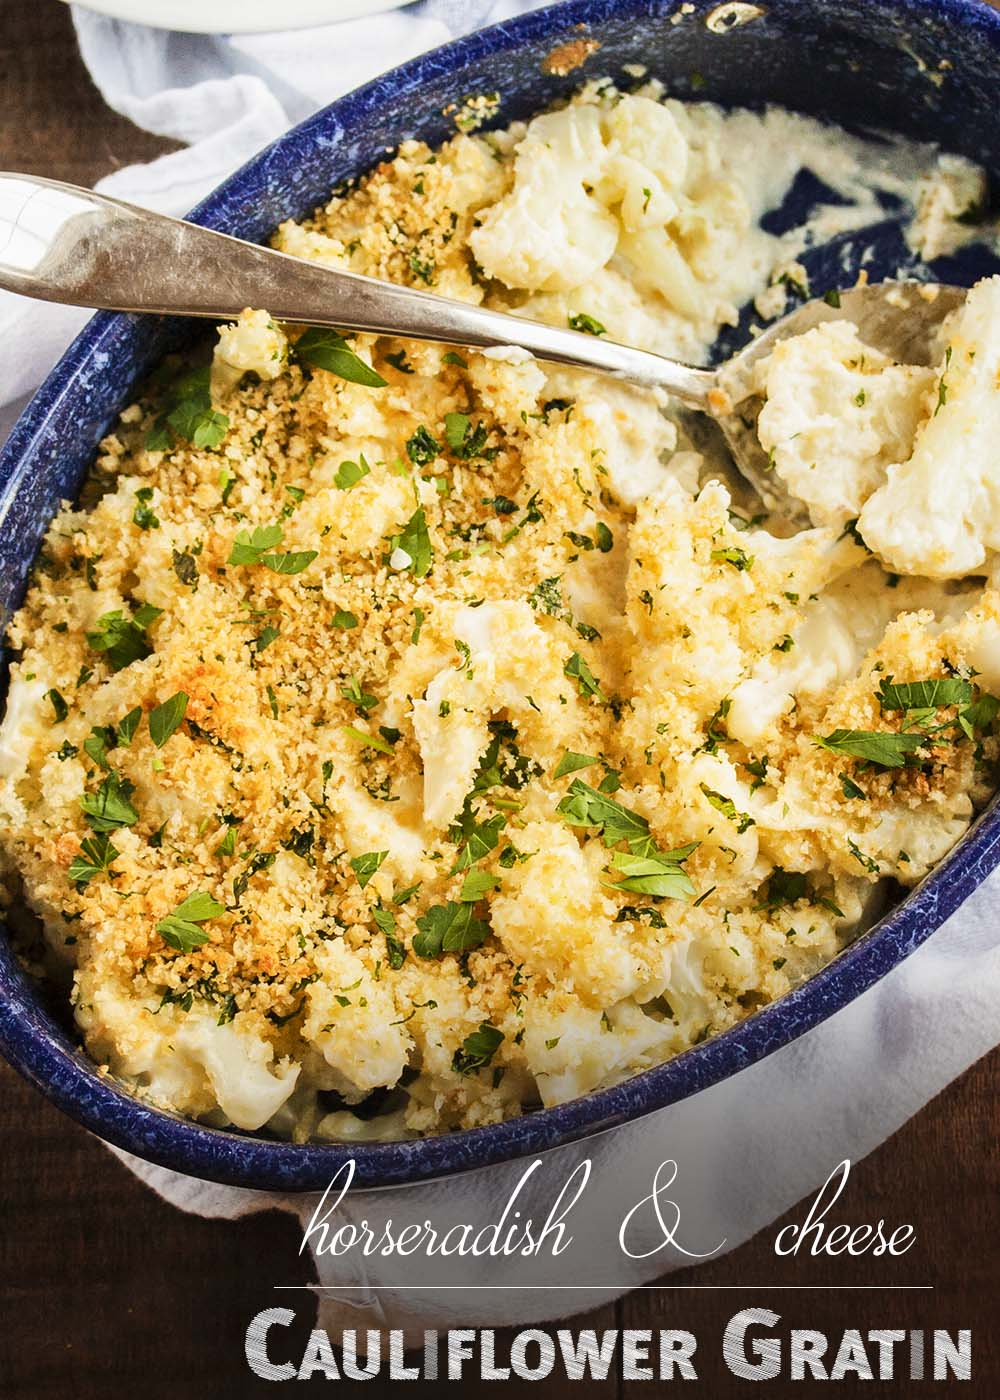 This Cauliflower Gratin in a Horseradish Cheese Sauce is comfort food that would be great on your holiday table or any other day of the year. A little spicy, a little creamy, a little cheesy, and a lot delicious. | justalittlebitofbacon.com